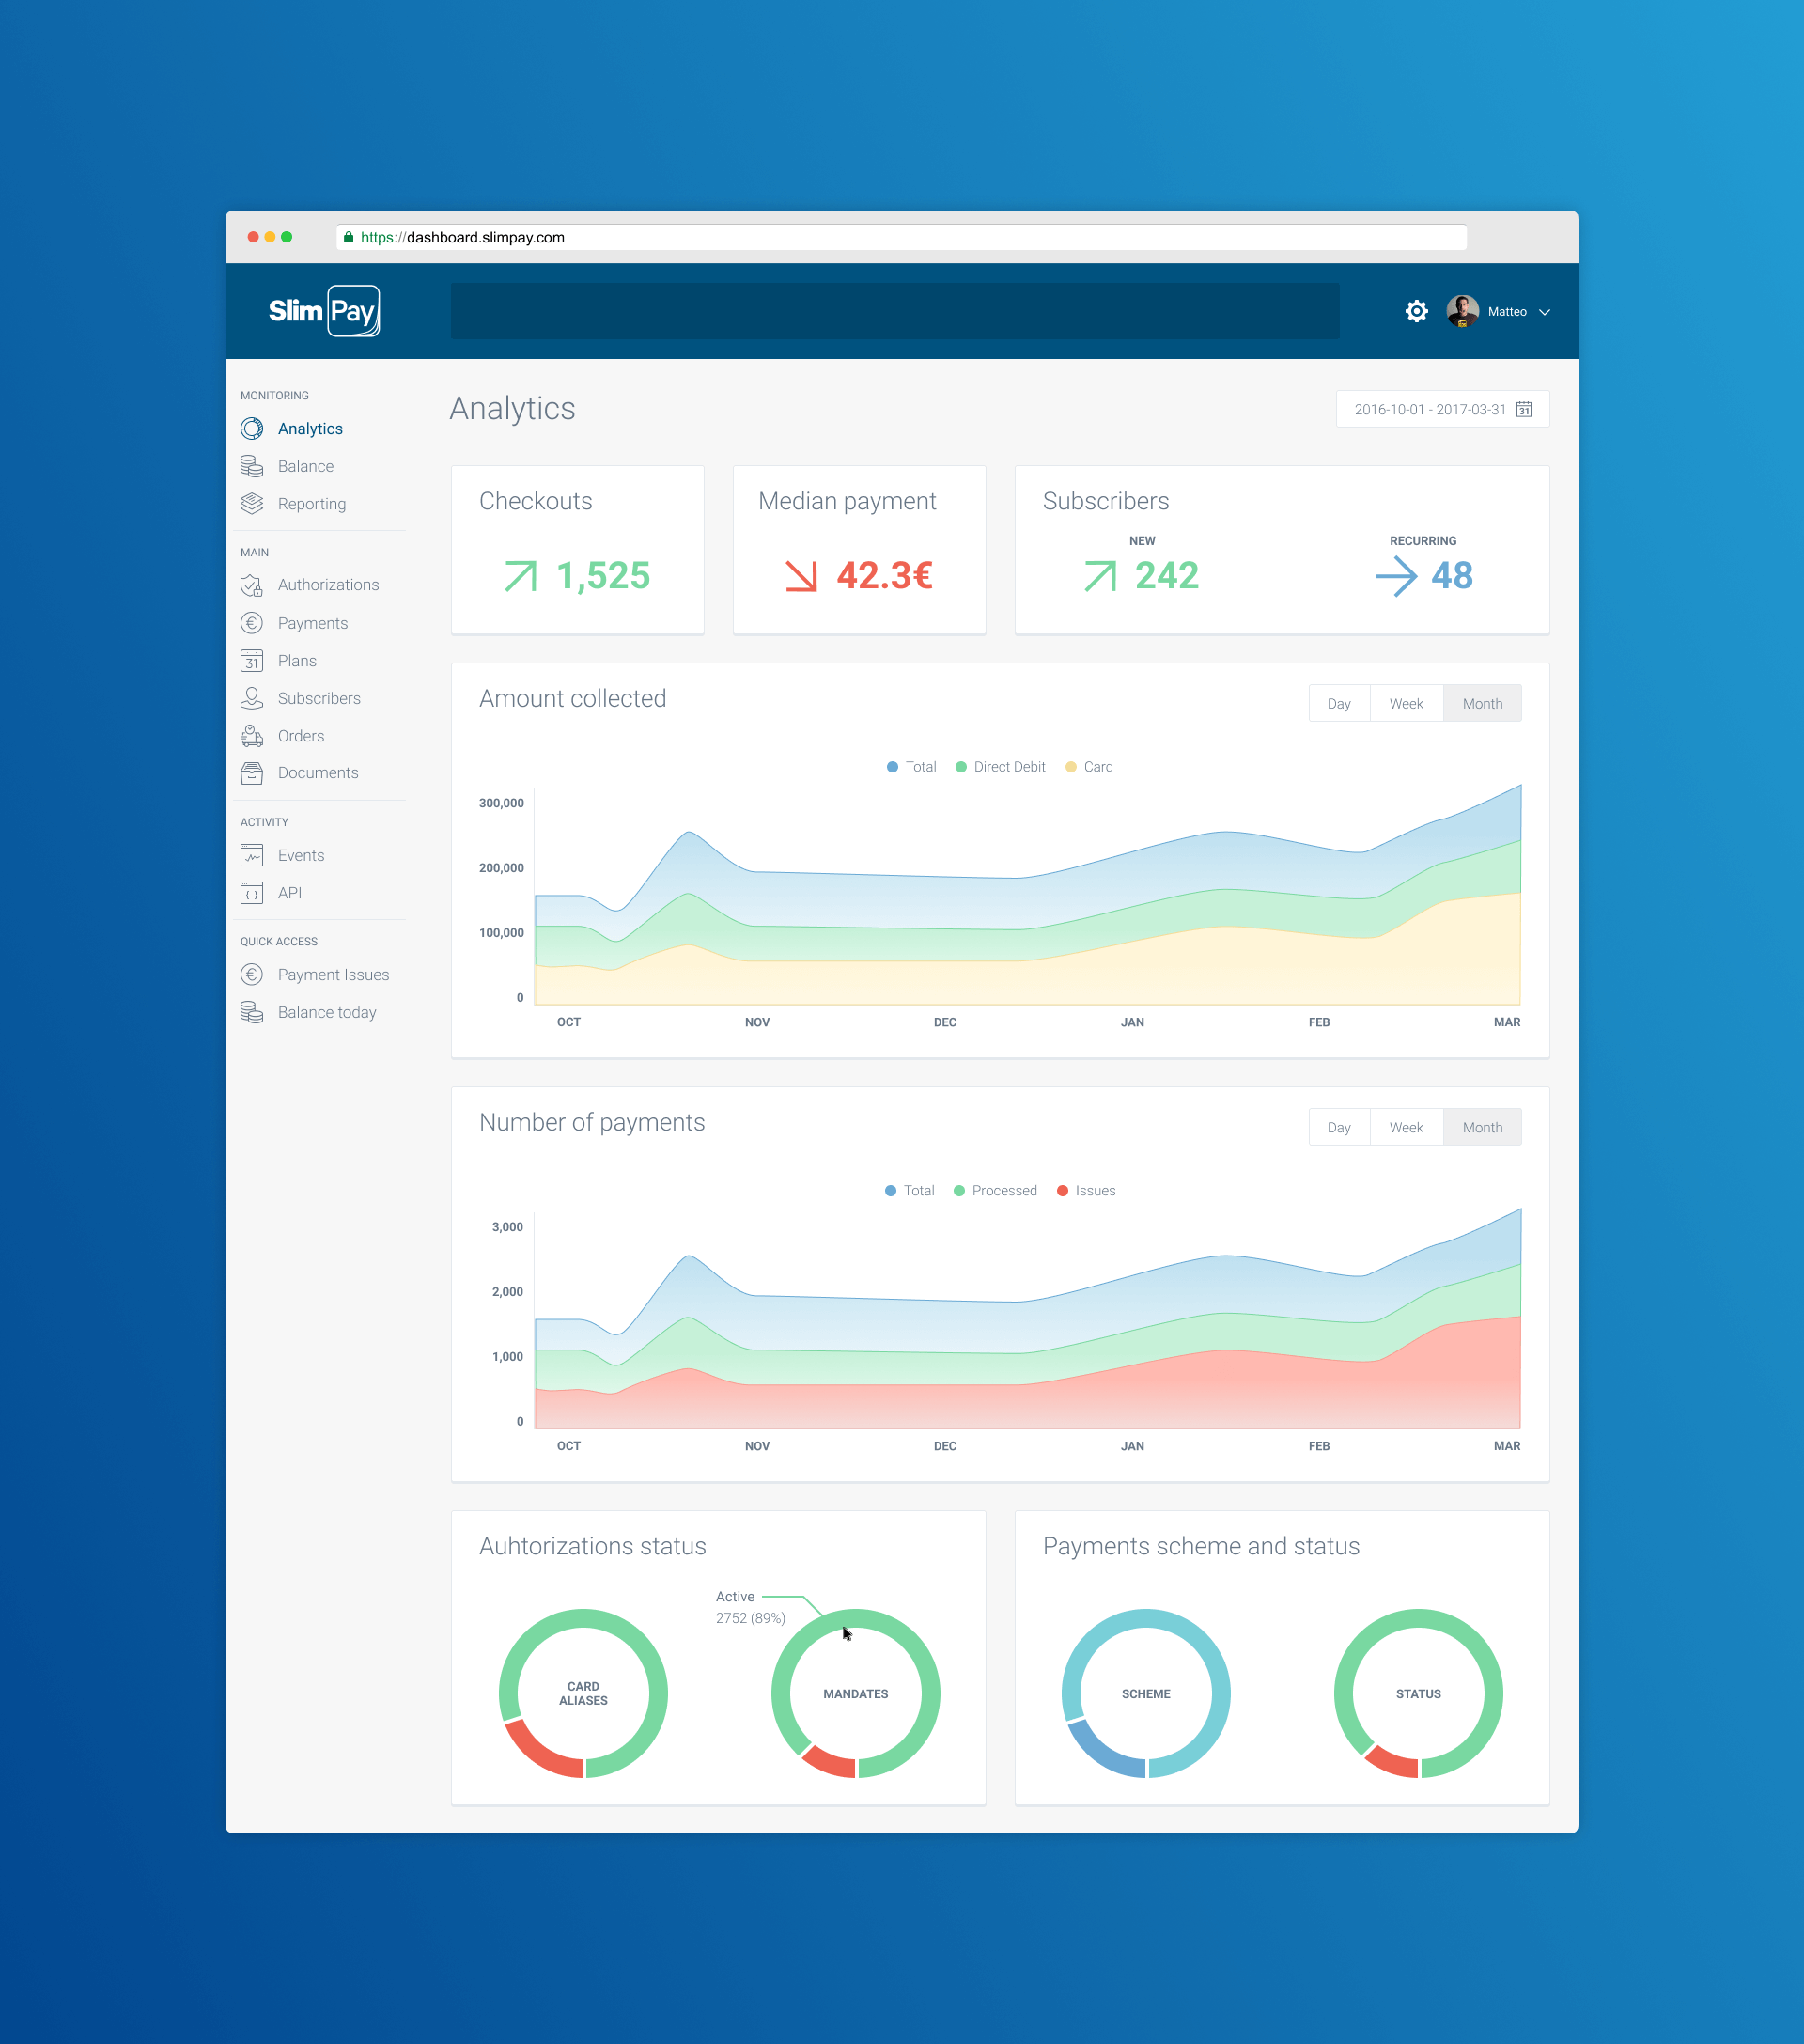 SlimPay Dashboard - Analytics page